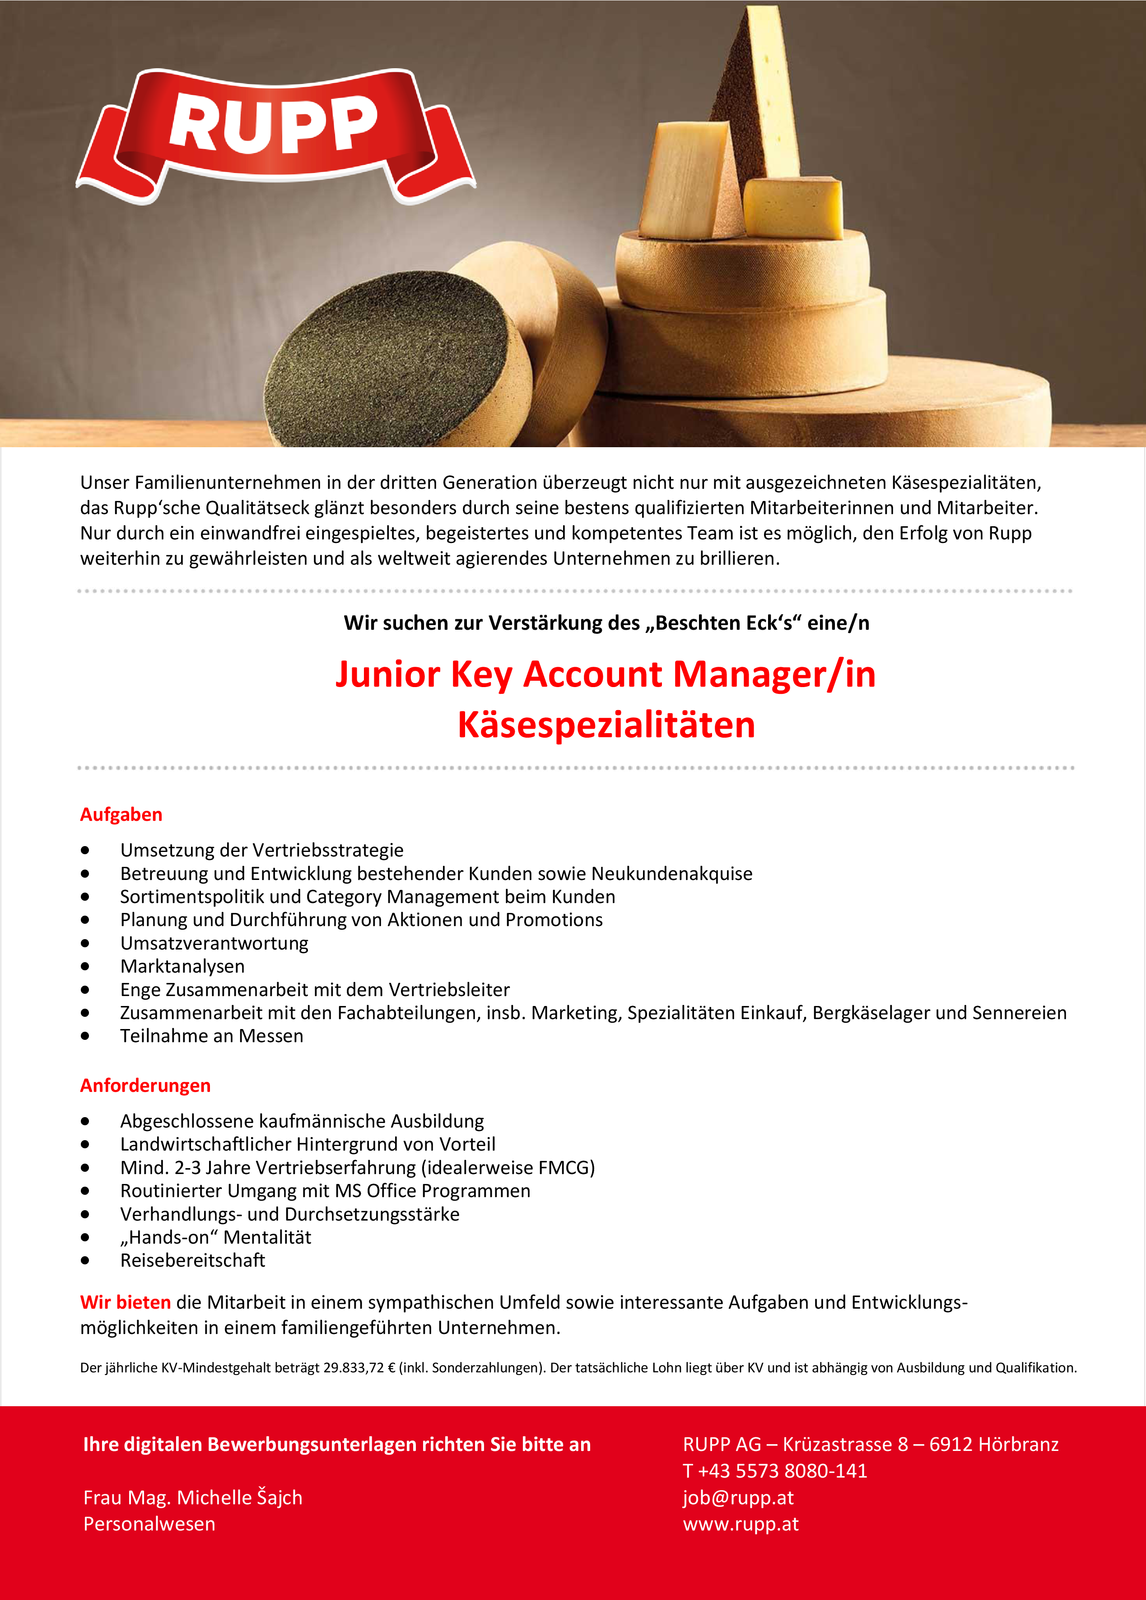 Junior Key Account Manager/in